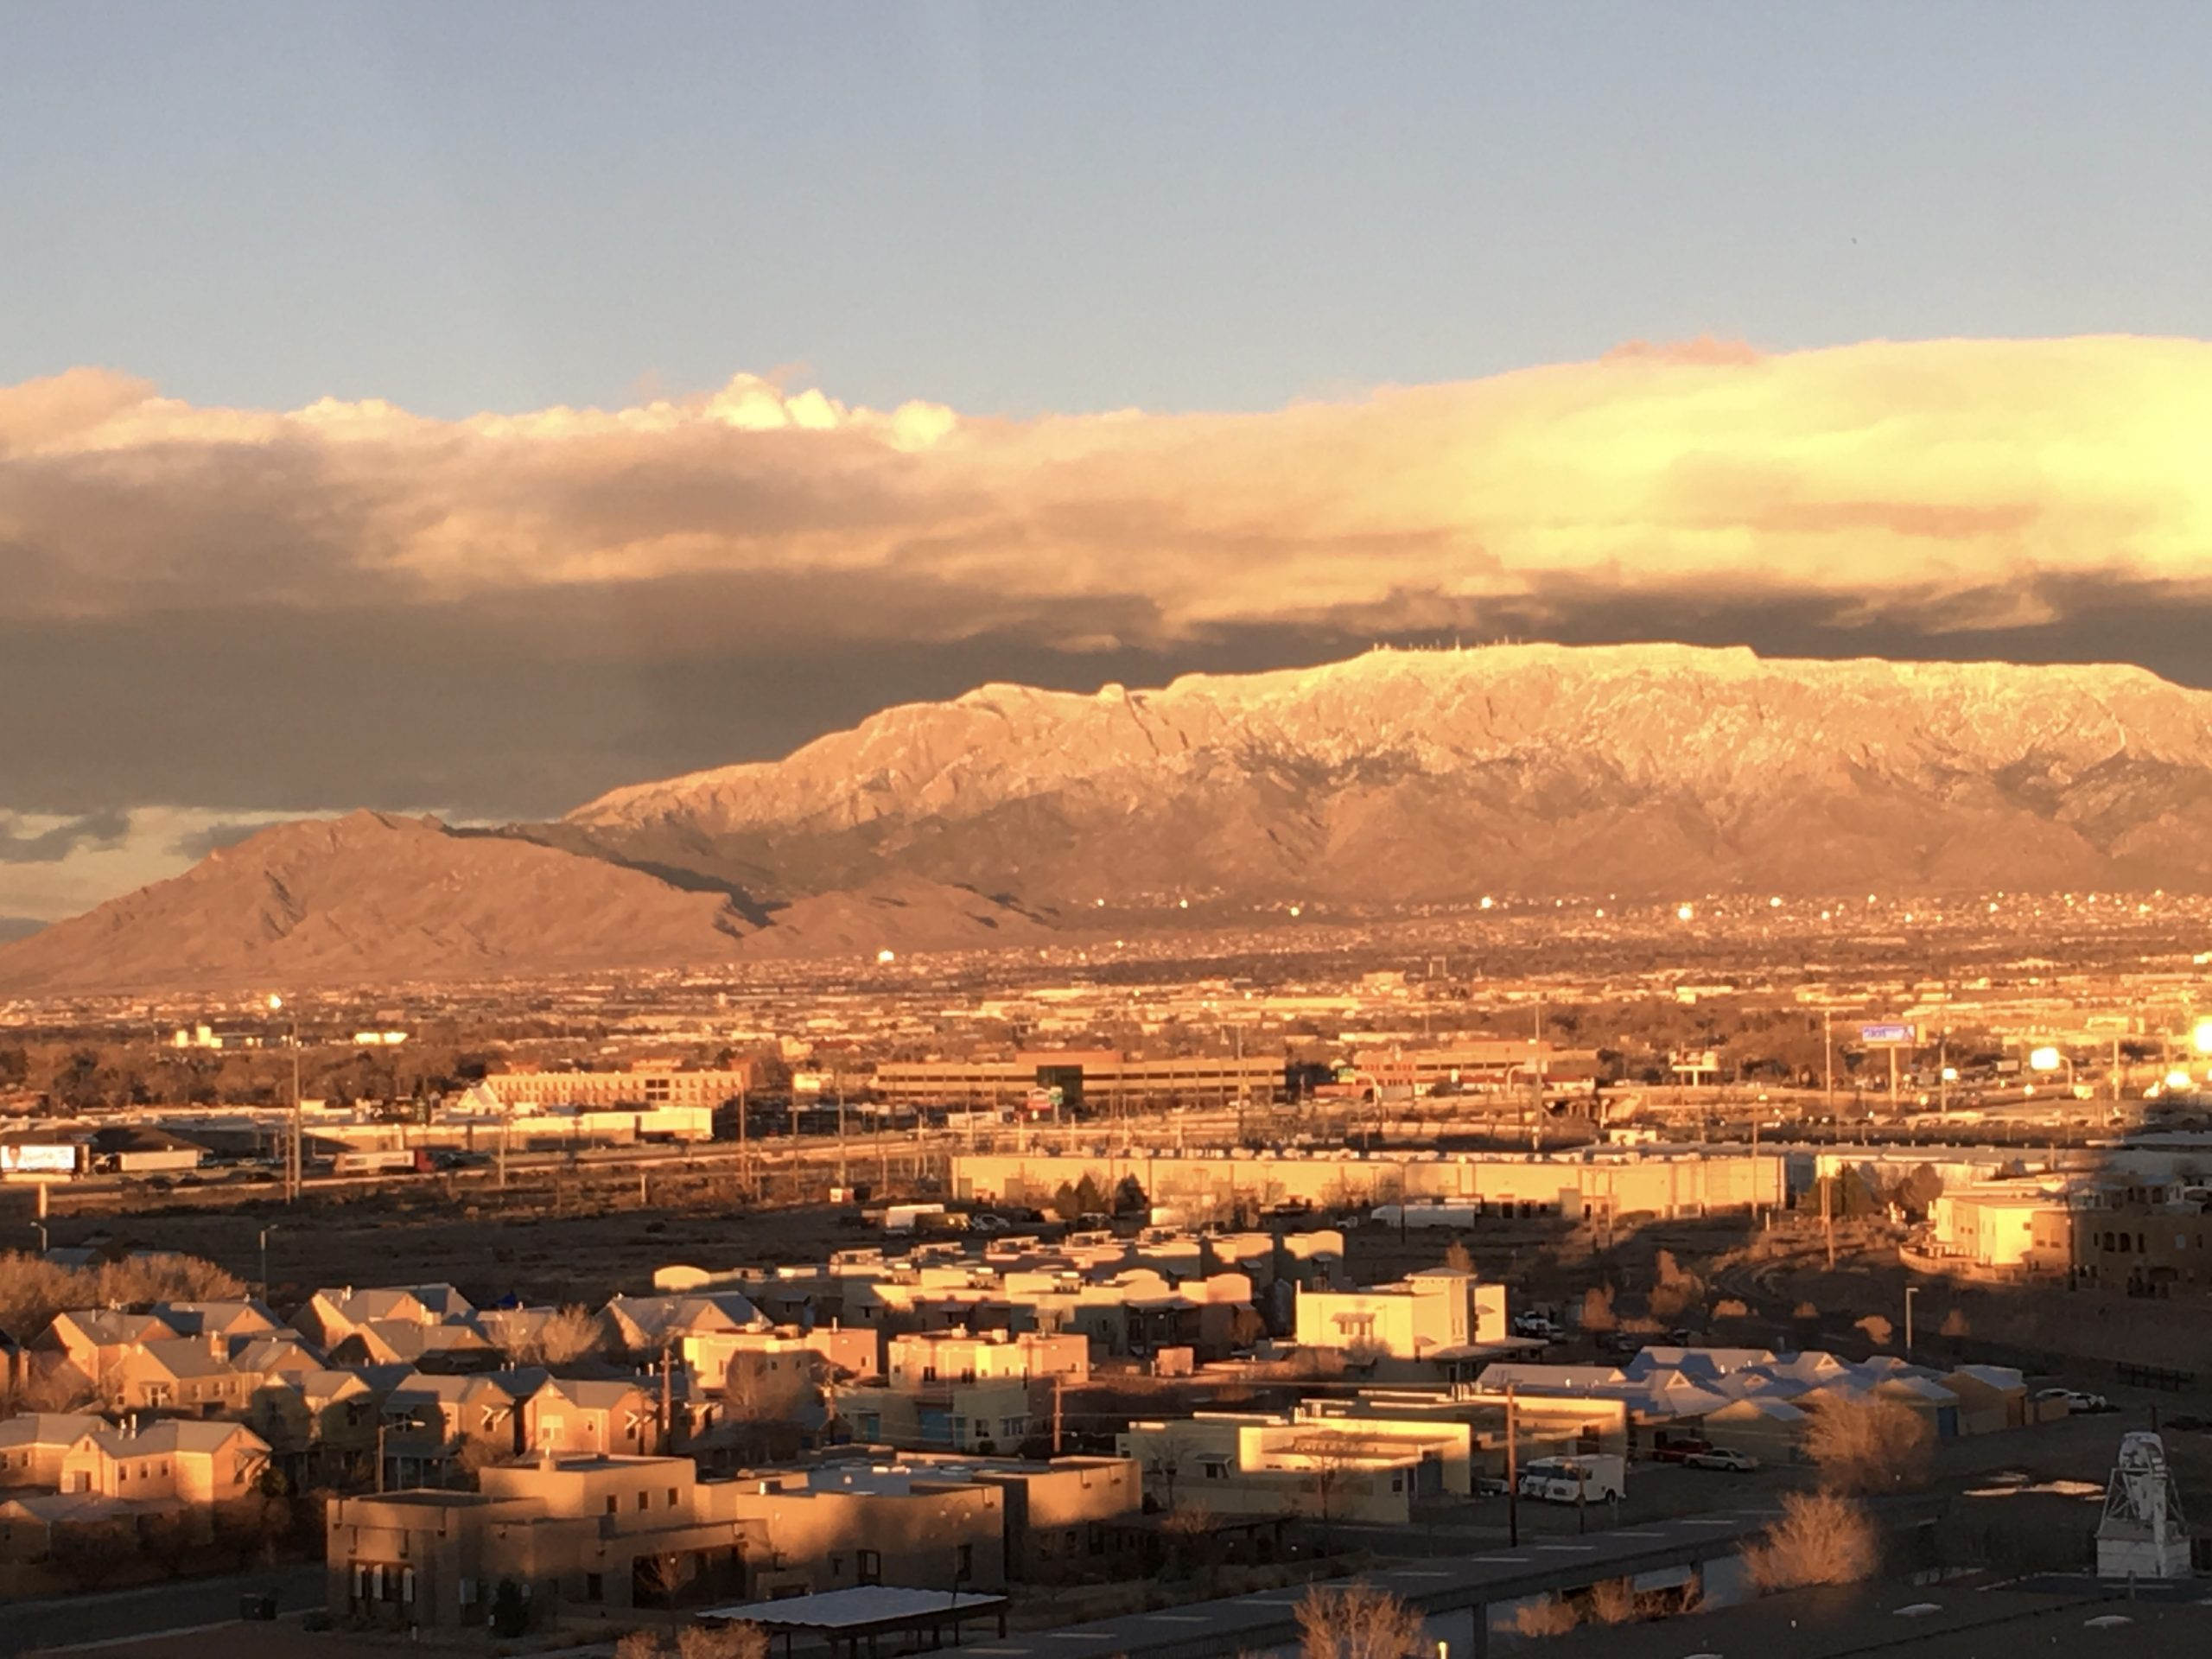 Albuquerque at sunrise